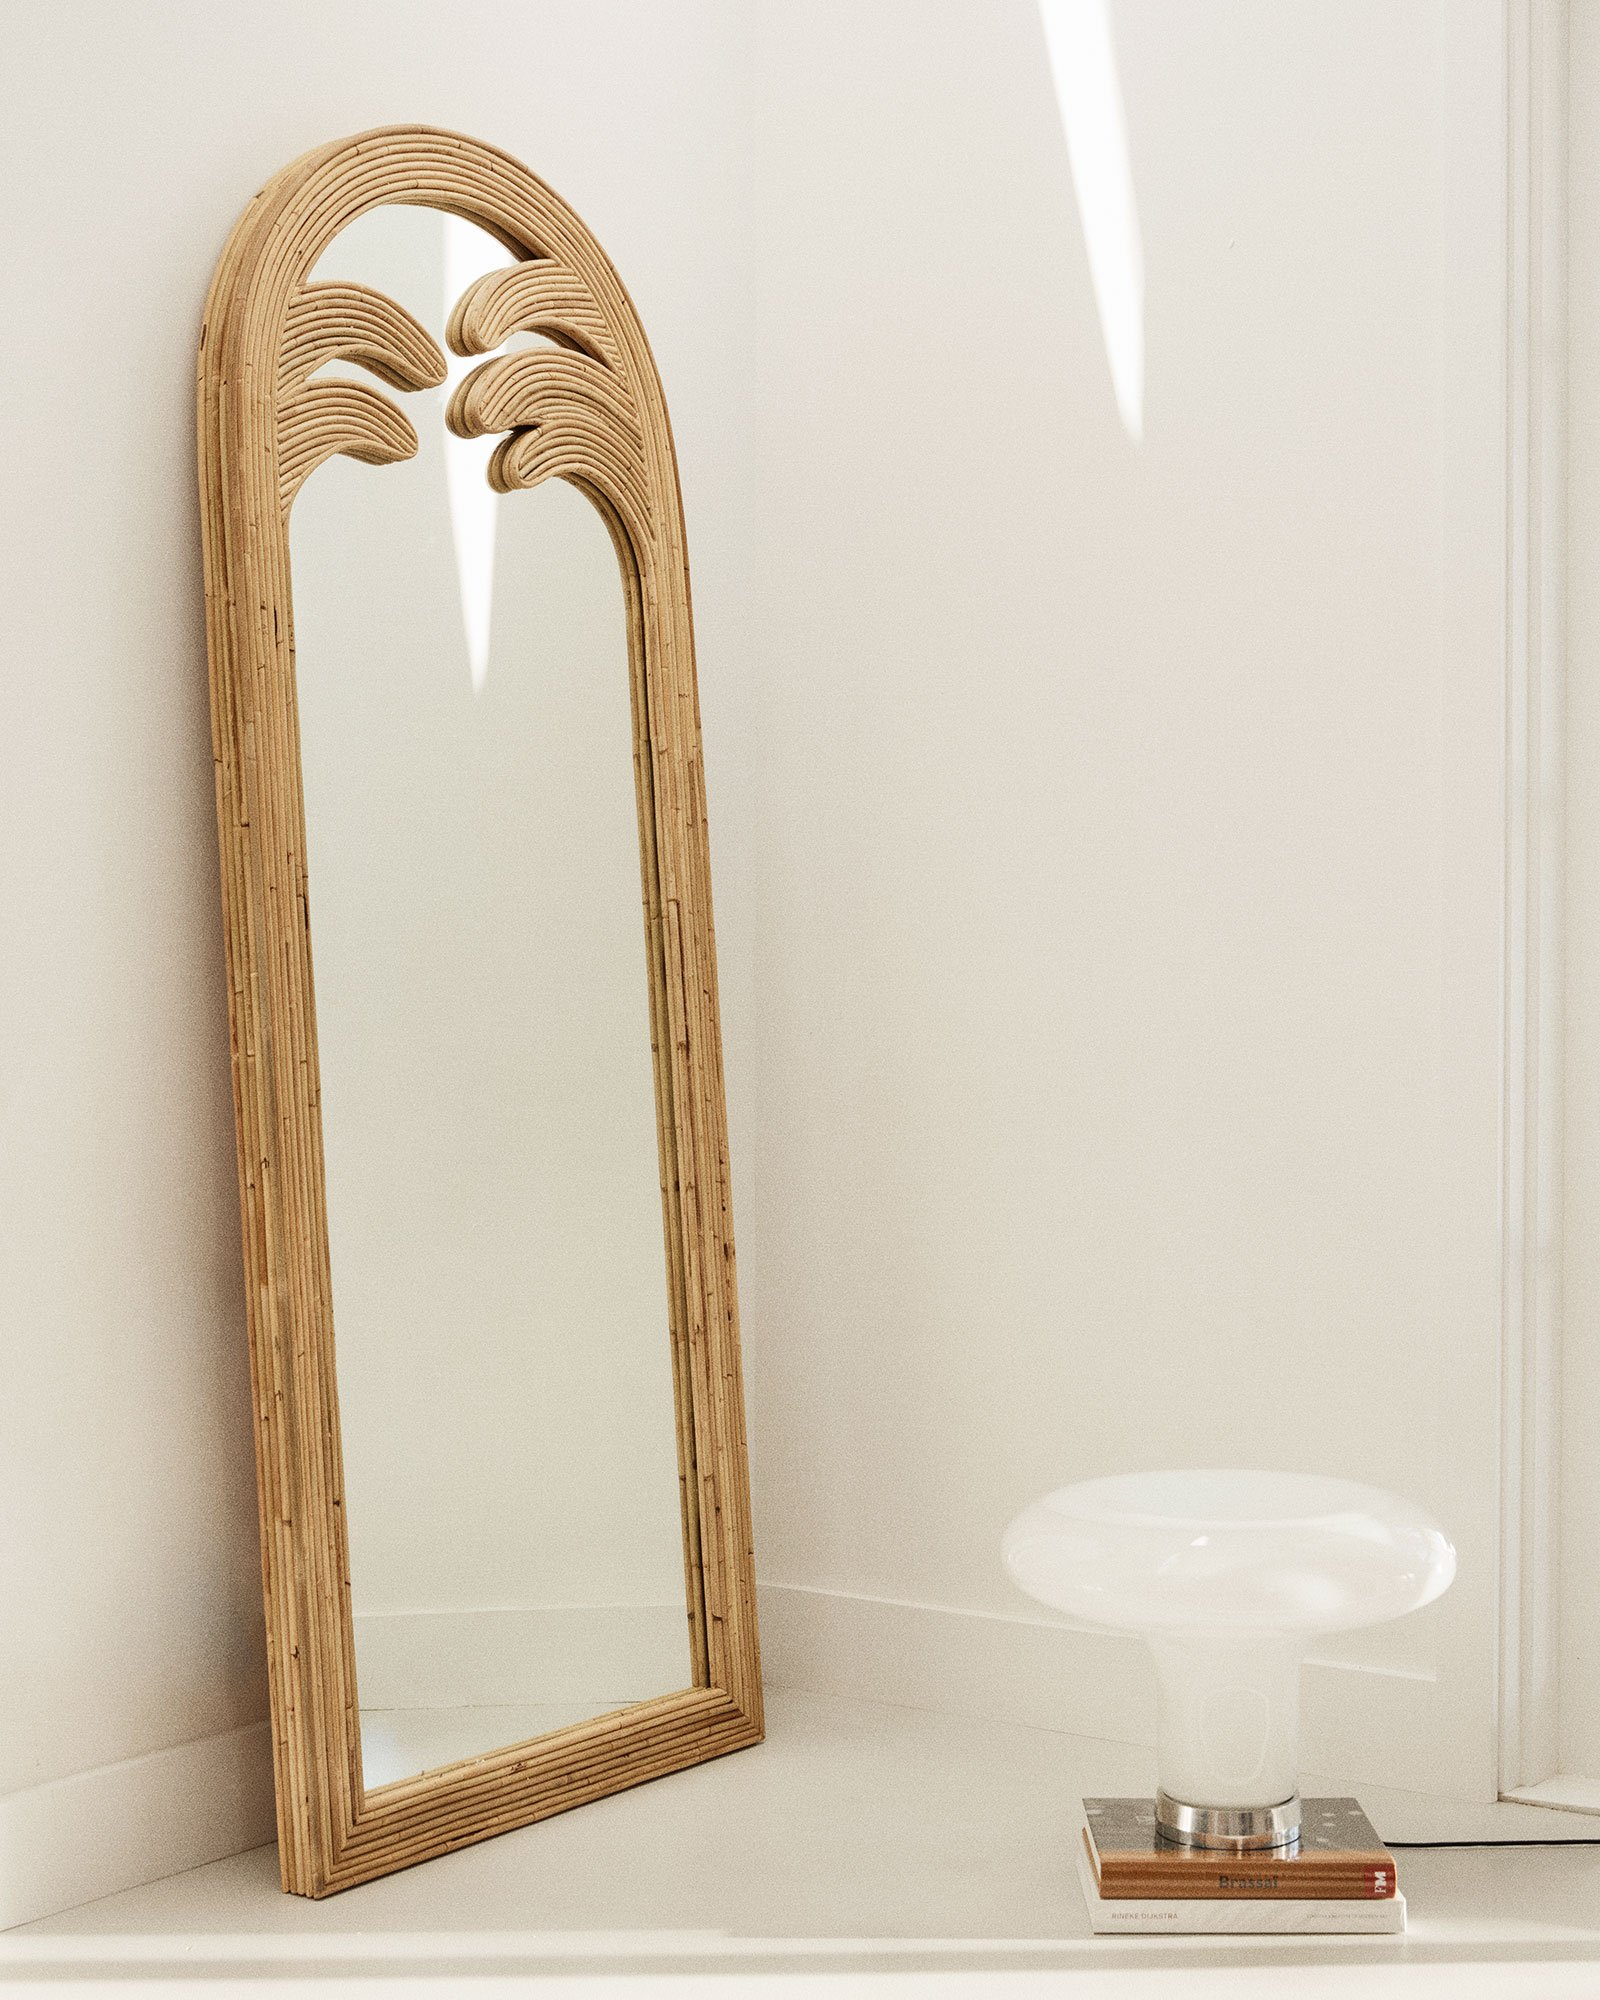 Ikea Specchio Make Up these budget mirrors are super instagrammable - budget